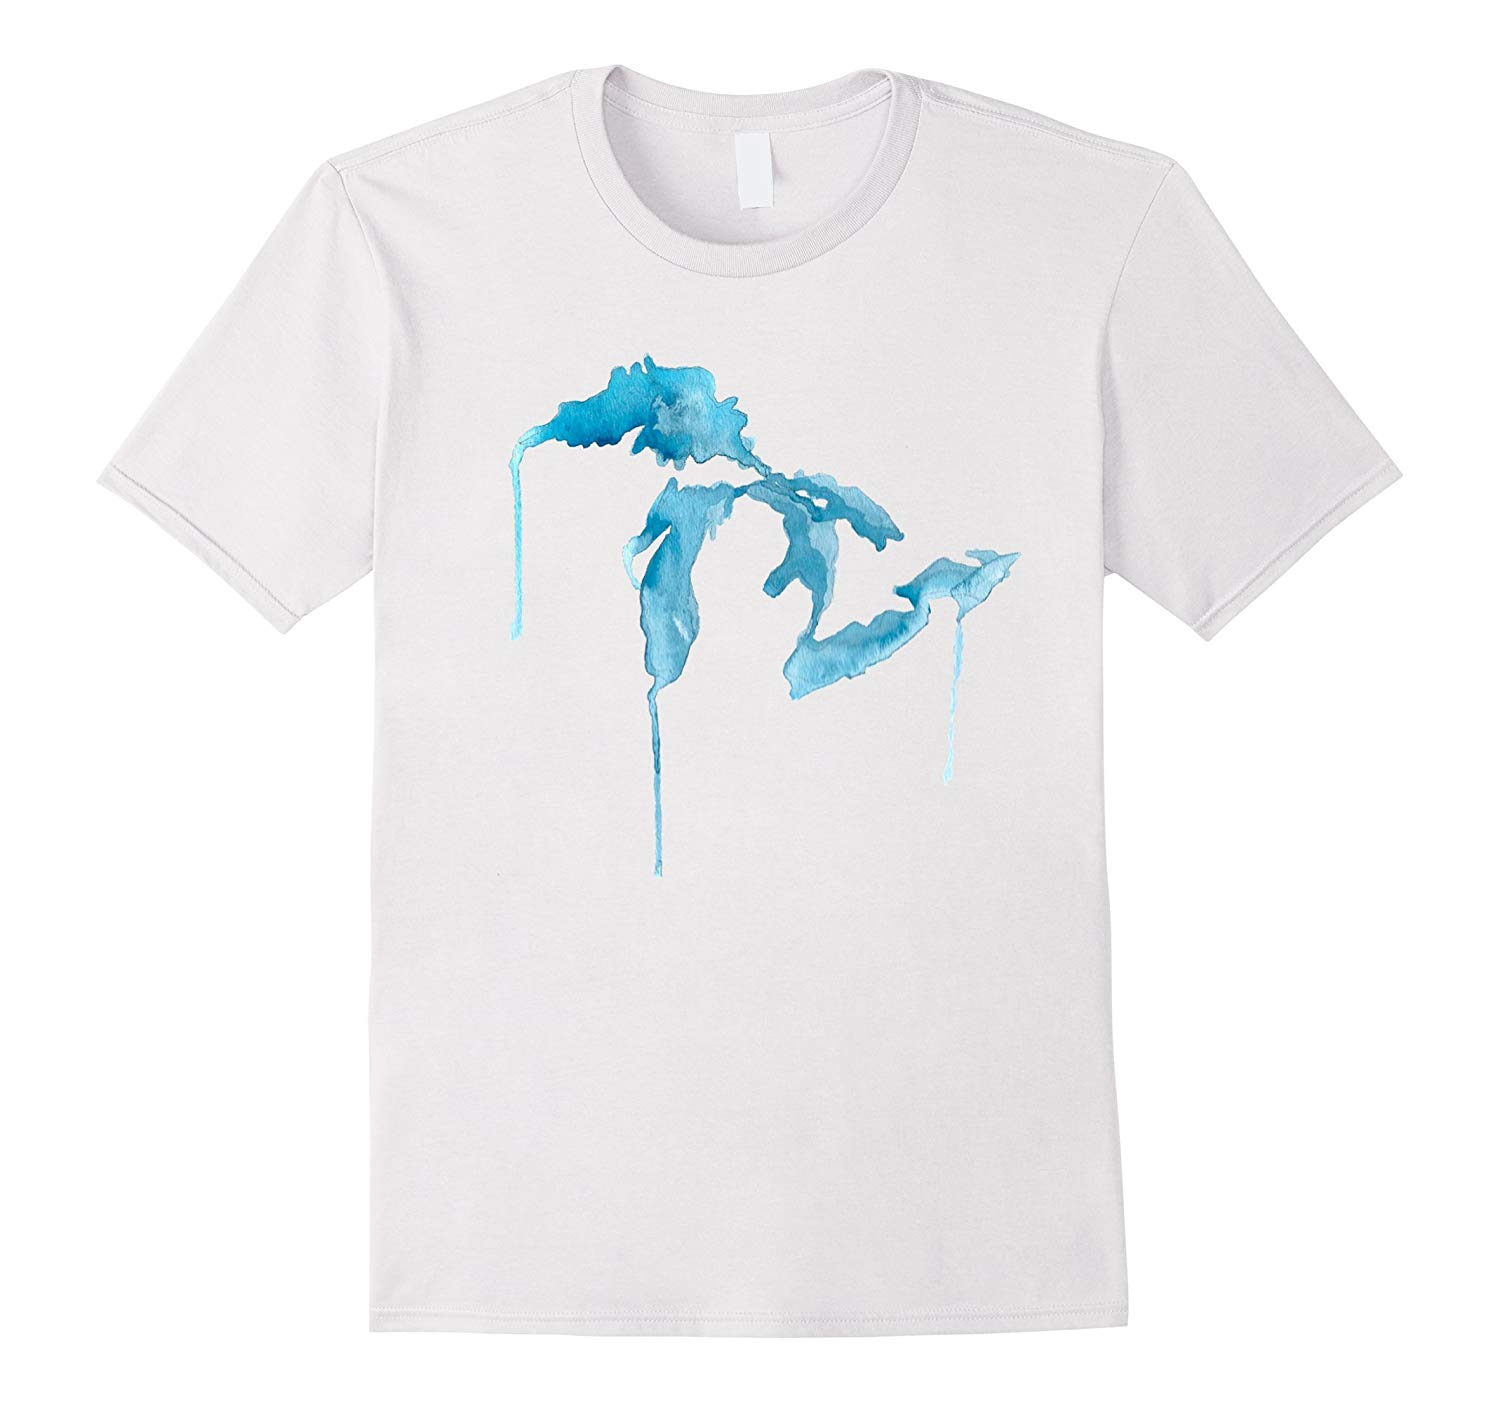 1500x1403 State Of Michigan Watercolor Mitten Great Lakes T Shirt Th